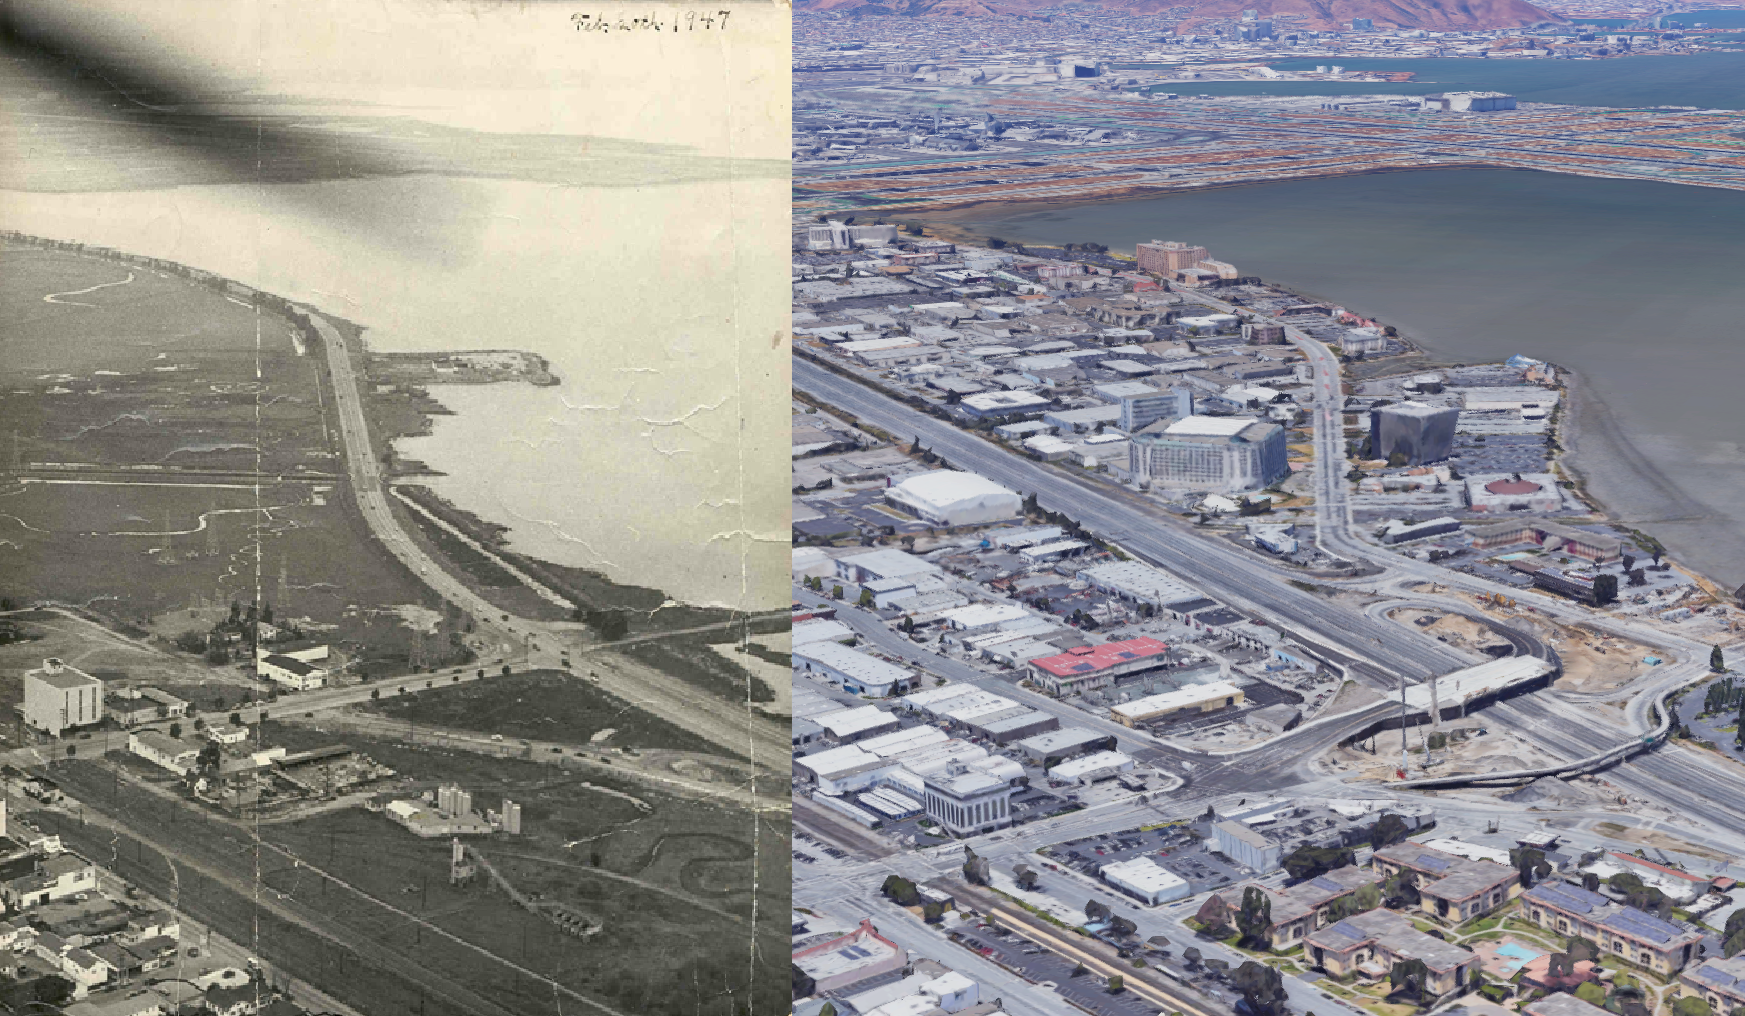 South San Francisco: 1947 vs. Now - Image Courtesy Burlingame Historical Society